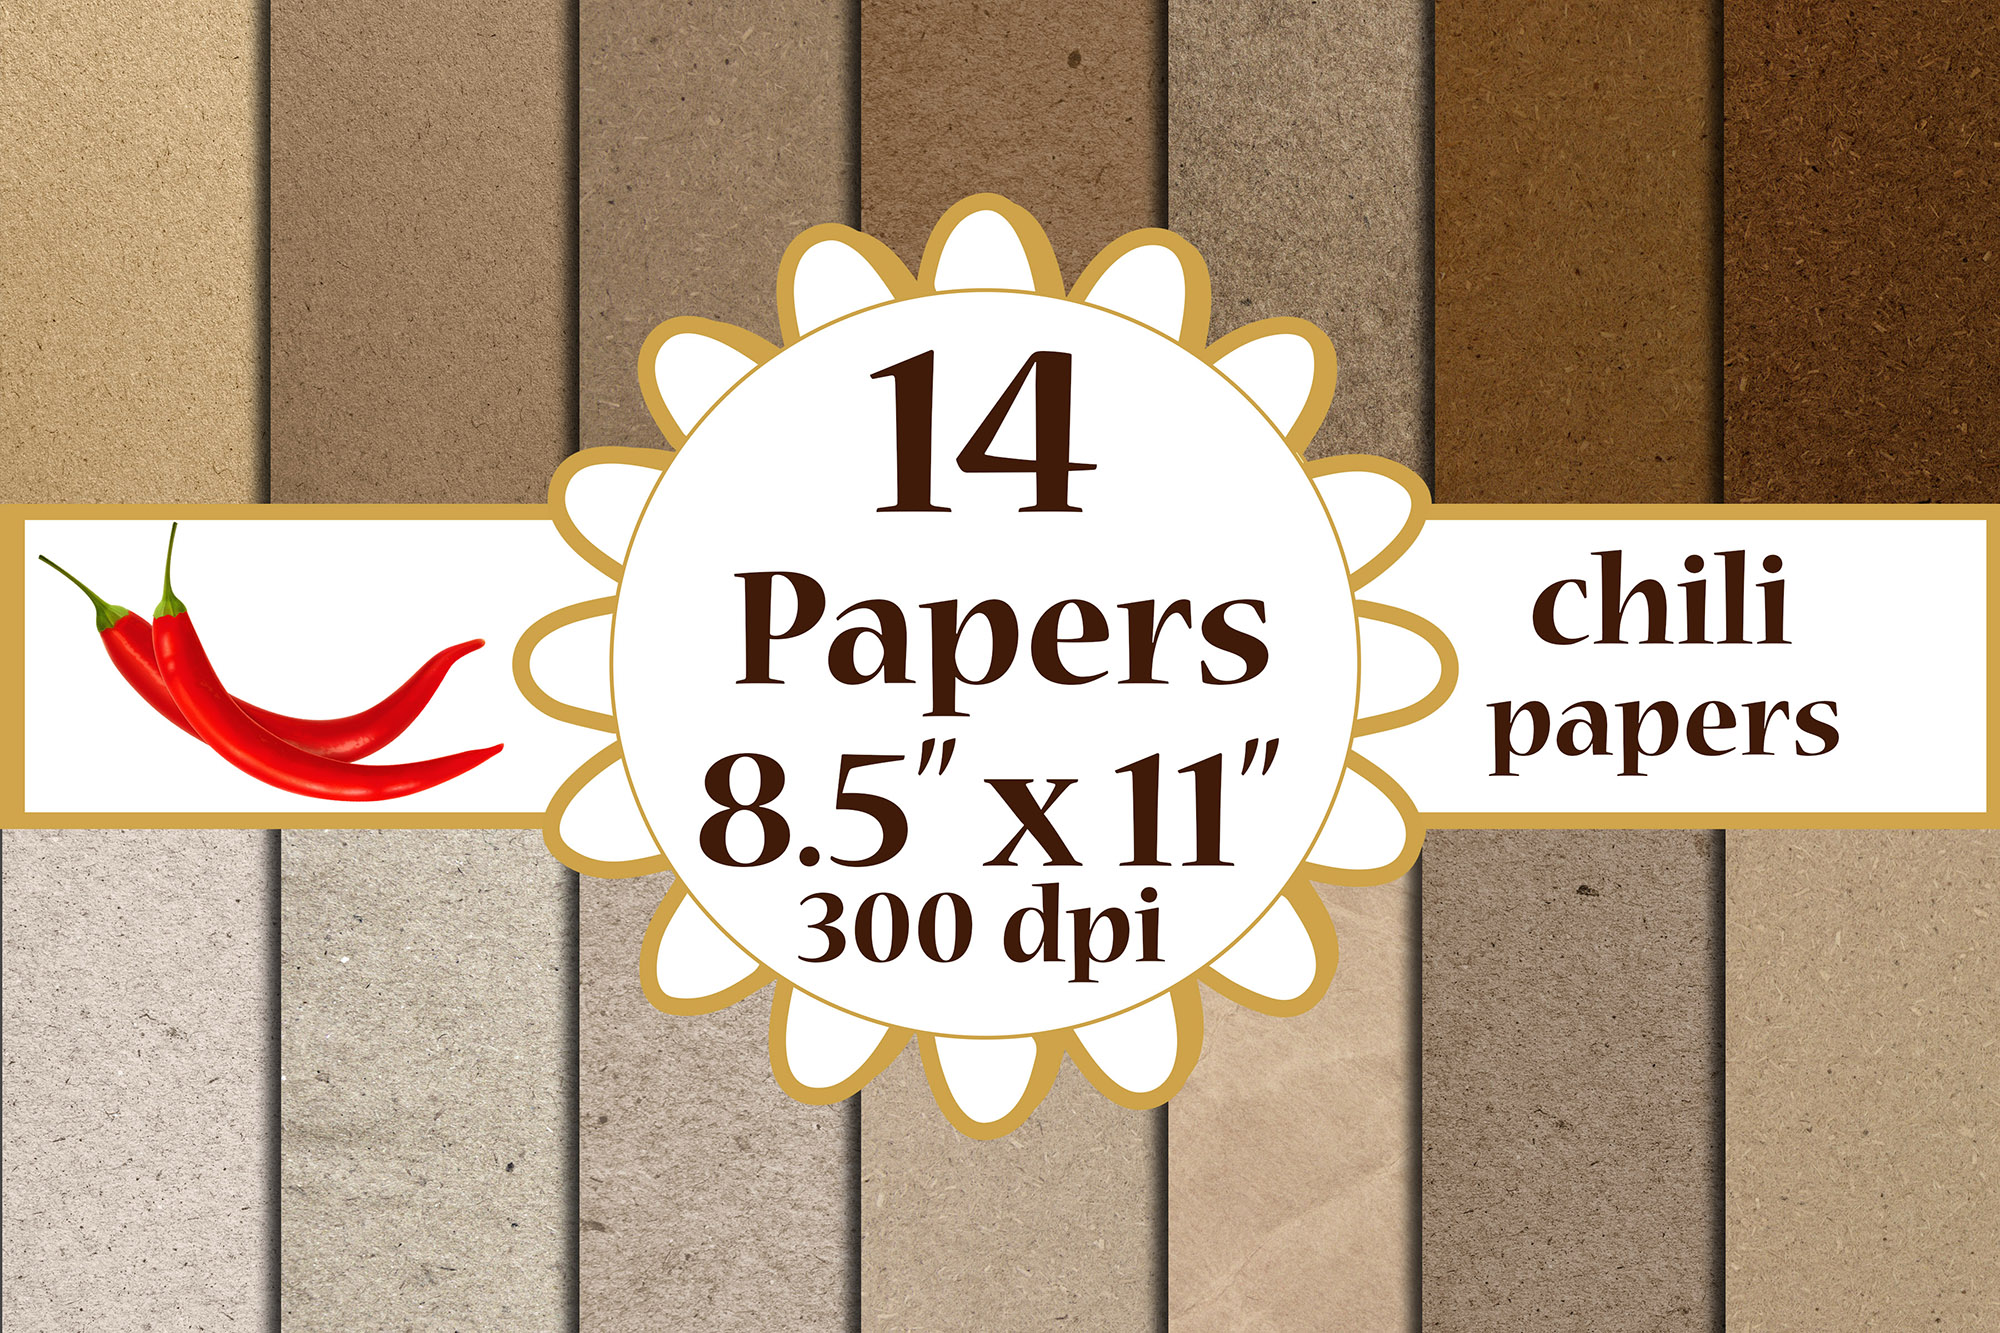 Download Free Kraft Digital Papeers Craft Papers A4 Graphic By Chilipapers for Cricut Explore, Silhouette and other cutting machines.